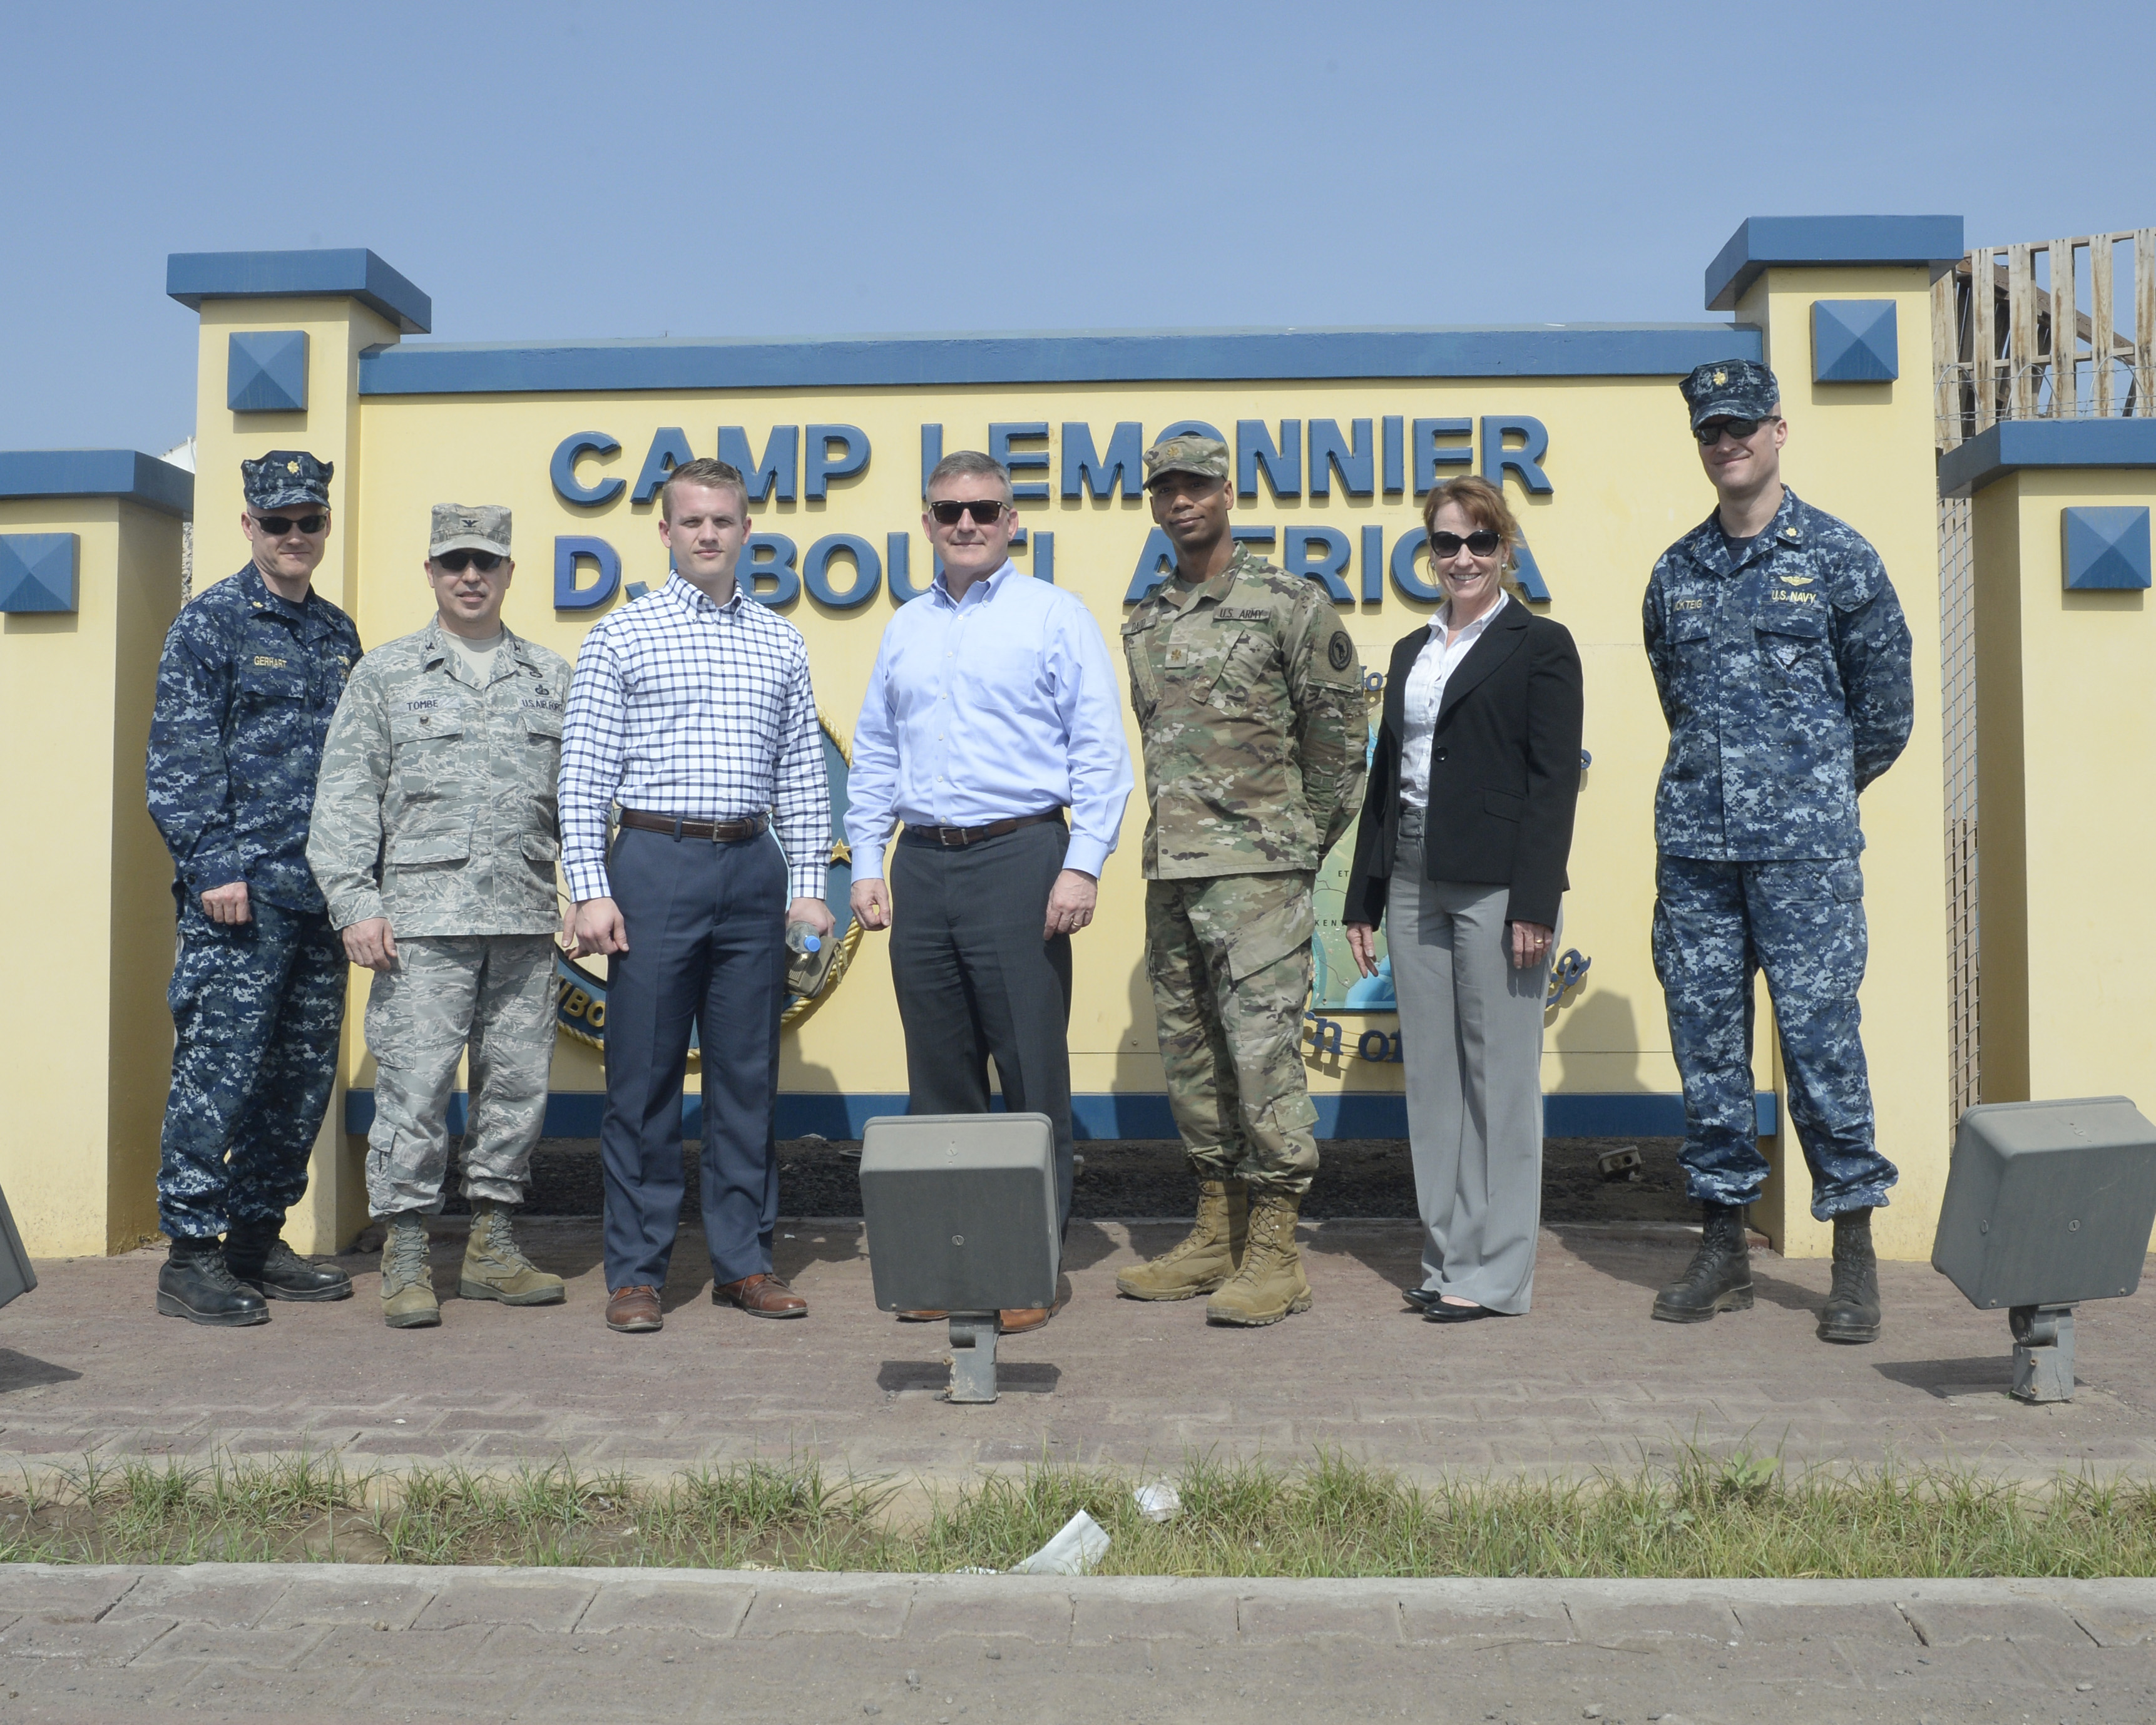 The United States Africa Command (USAFRICOM) Resources and Assessments Director David Thielde (center) and service members from USAFRICOM pose for a photo during their visit to Camp Lemonnier, Djibouti, Feb. 24, 2017. Thielde engaged with Combined Joint Task Force-Horn of Africa (CJTF-HOA) leadership to gain a better understanding of the operational environment and future objectives and initiatives for CJTF-HOA. (U.S. Air National Guard Photo by Staff Sgt. Christian Jadot)